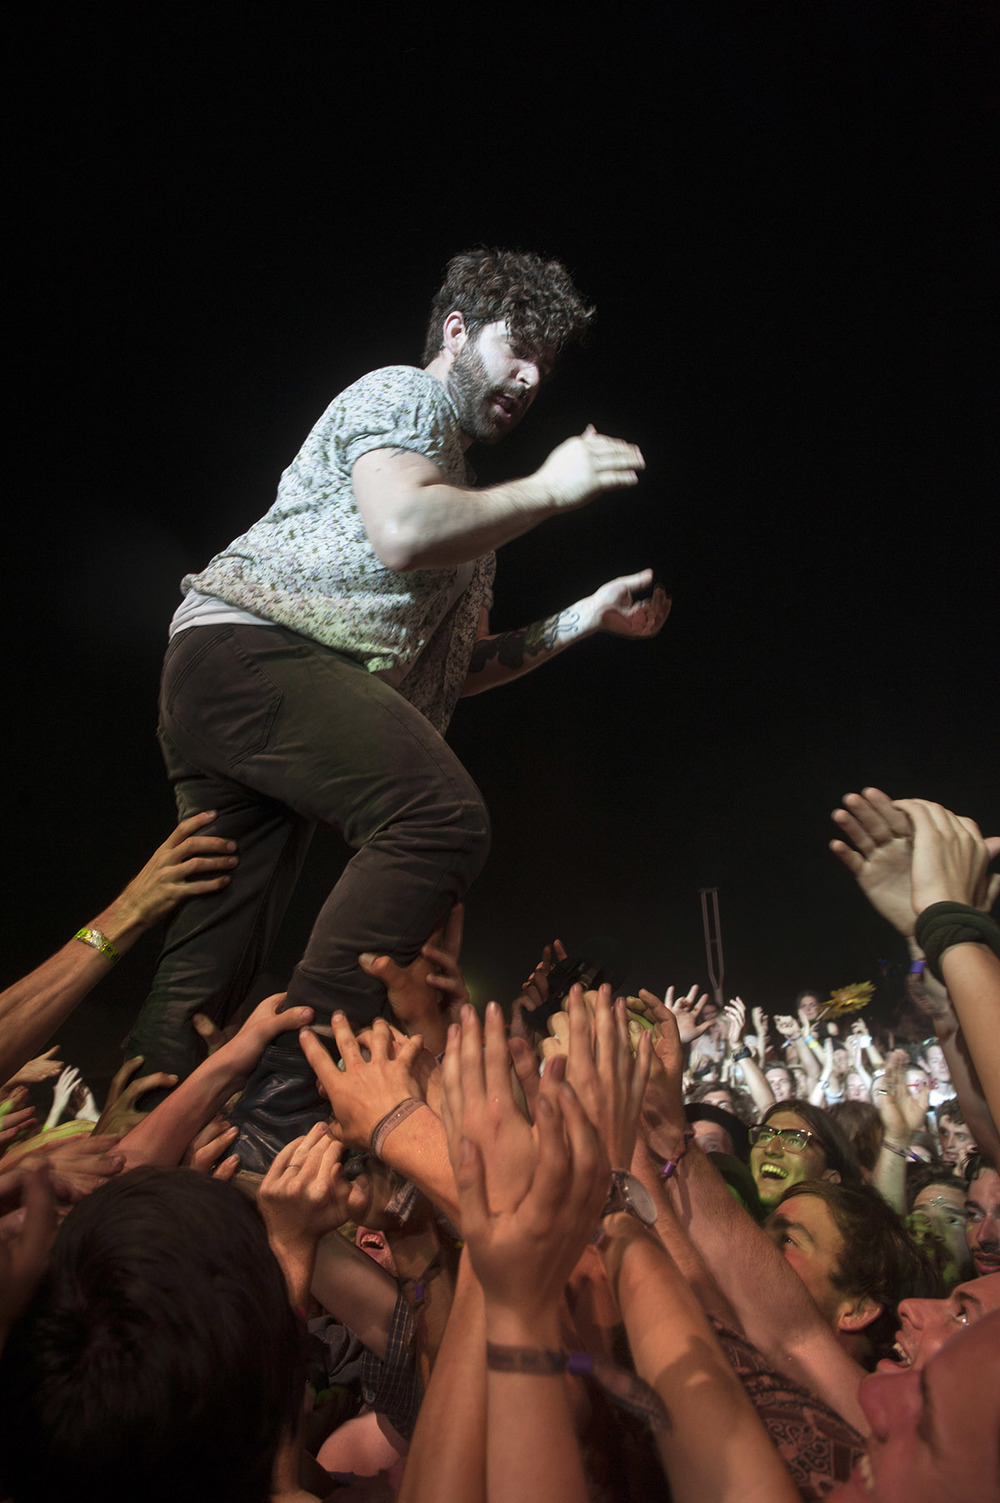 Yannis Philippakis, lead singer and guitarist of British indie group Foals crowd surfs after ringing in the New Year at Falls Festival - image courtesy of Kirsty Umback.